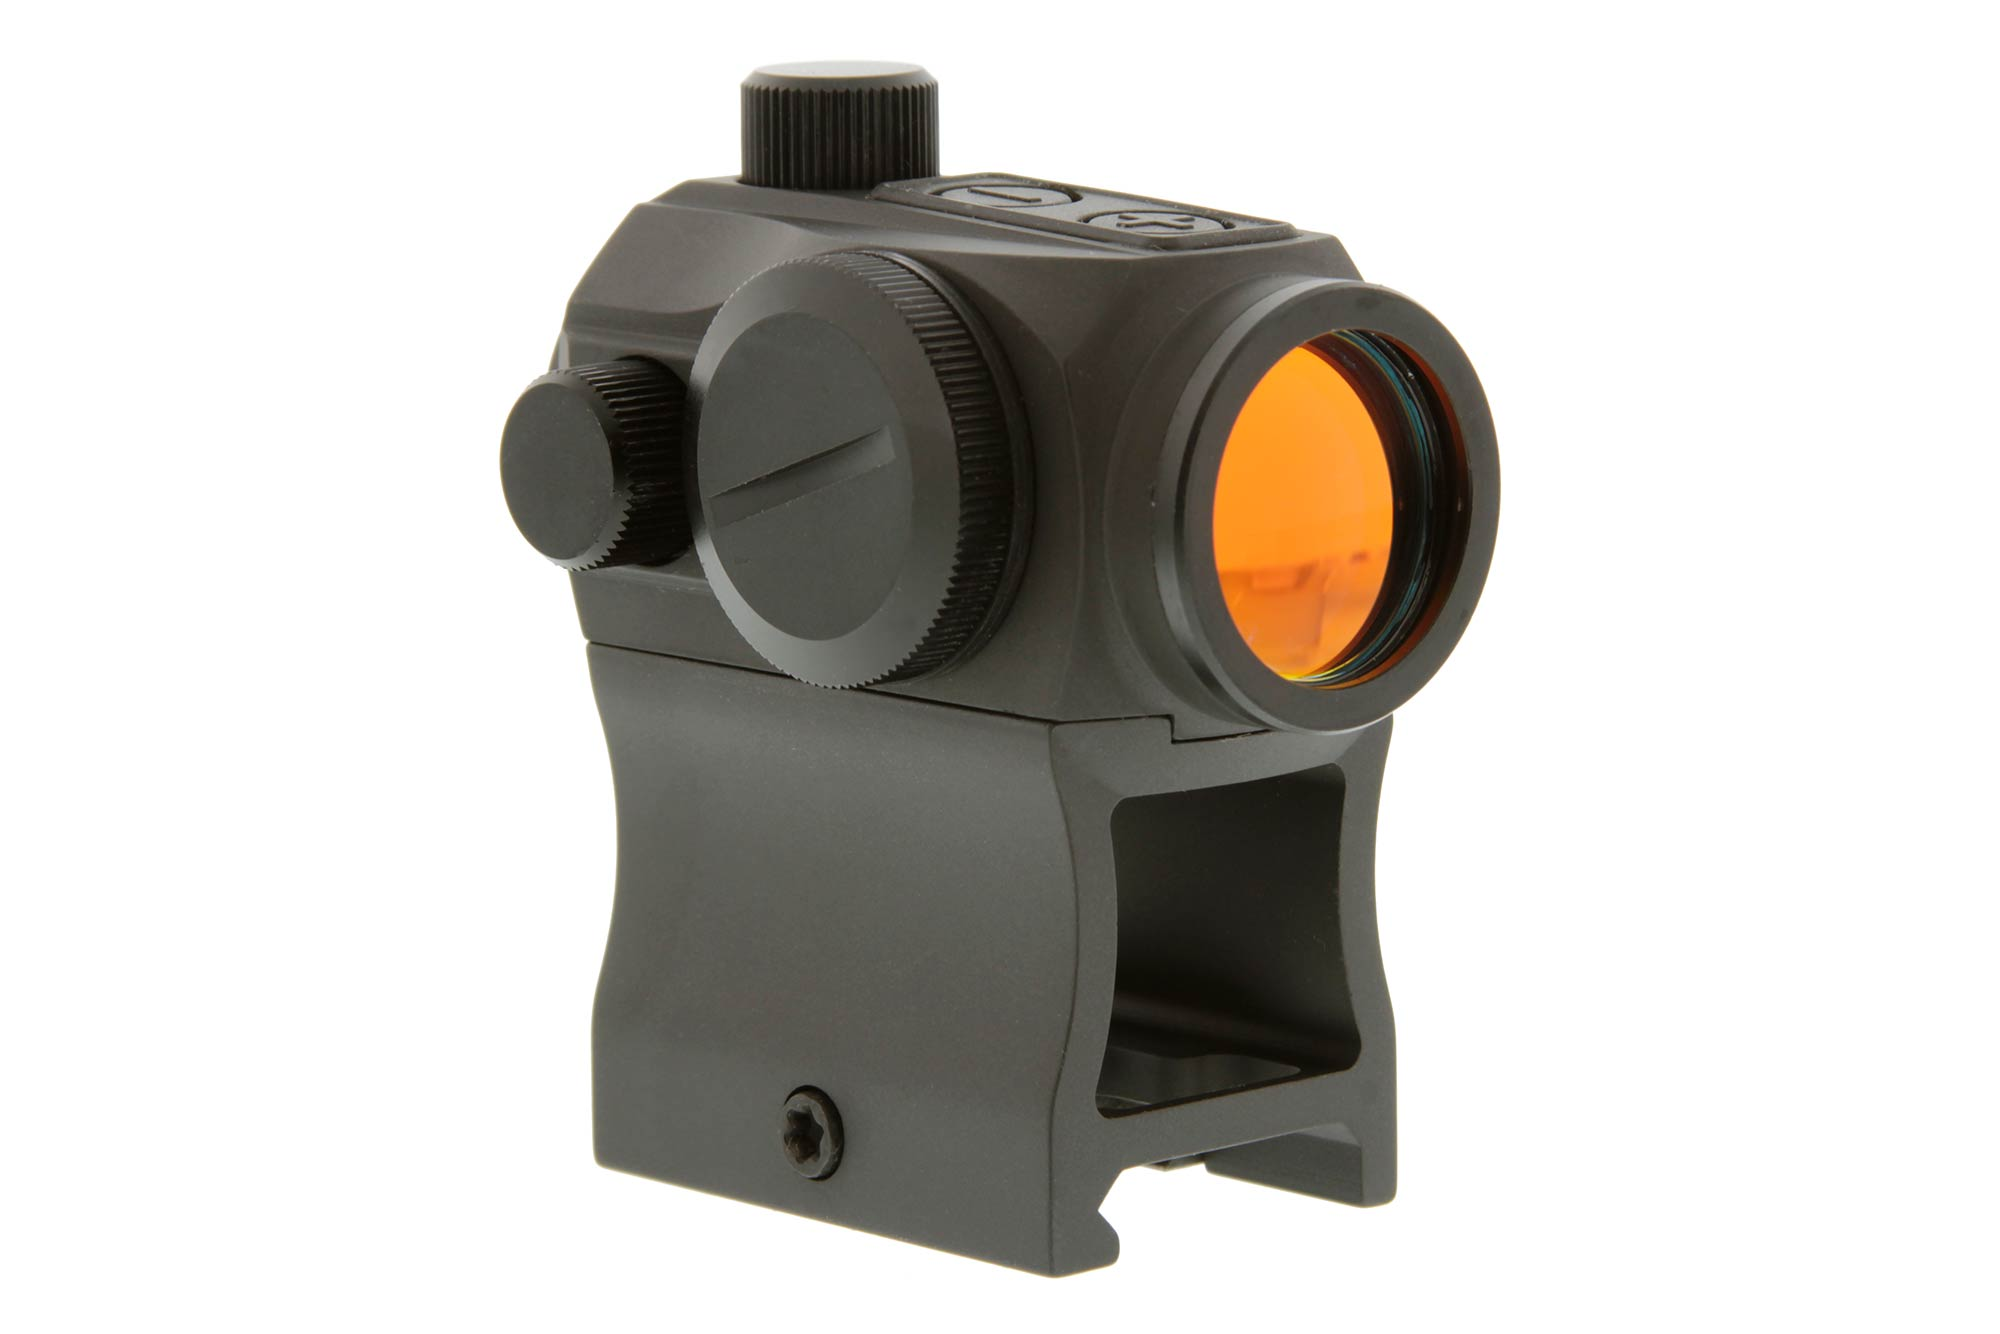 The Primary Arms lower 1/3 cowitness micro dot riser mount is extremely durable and guaranteed to hold zero